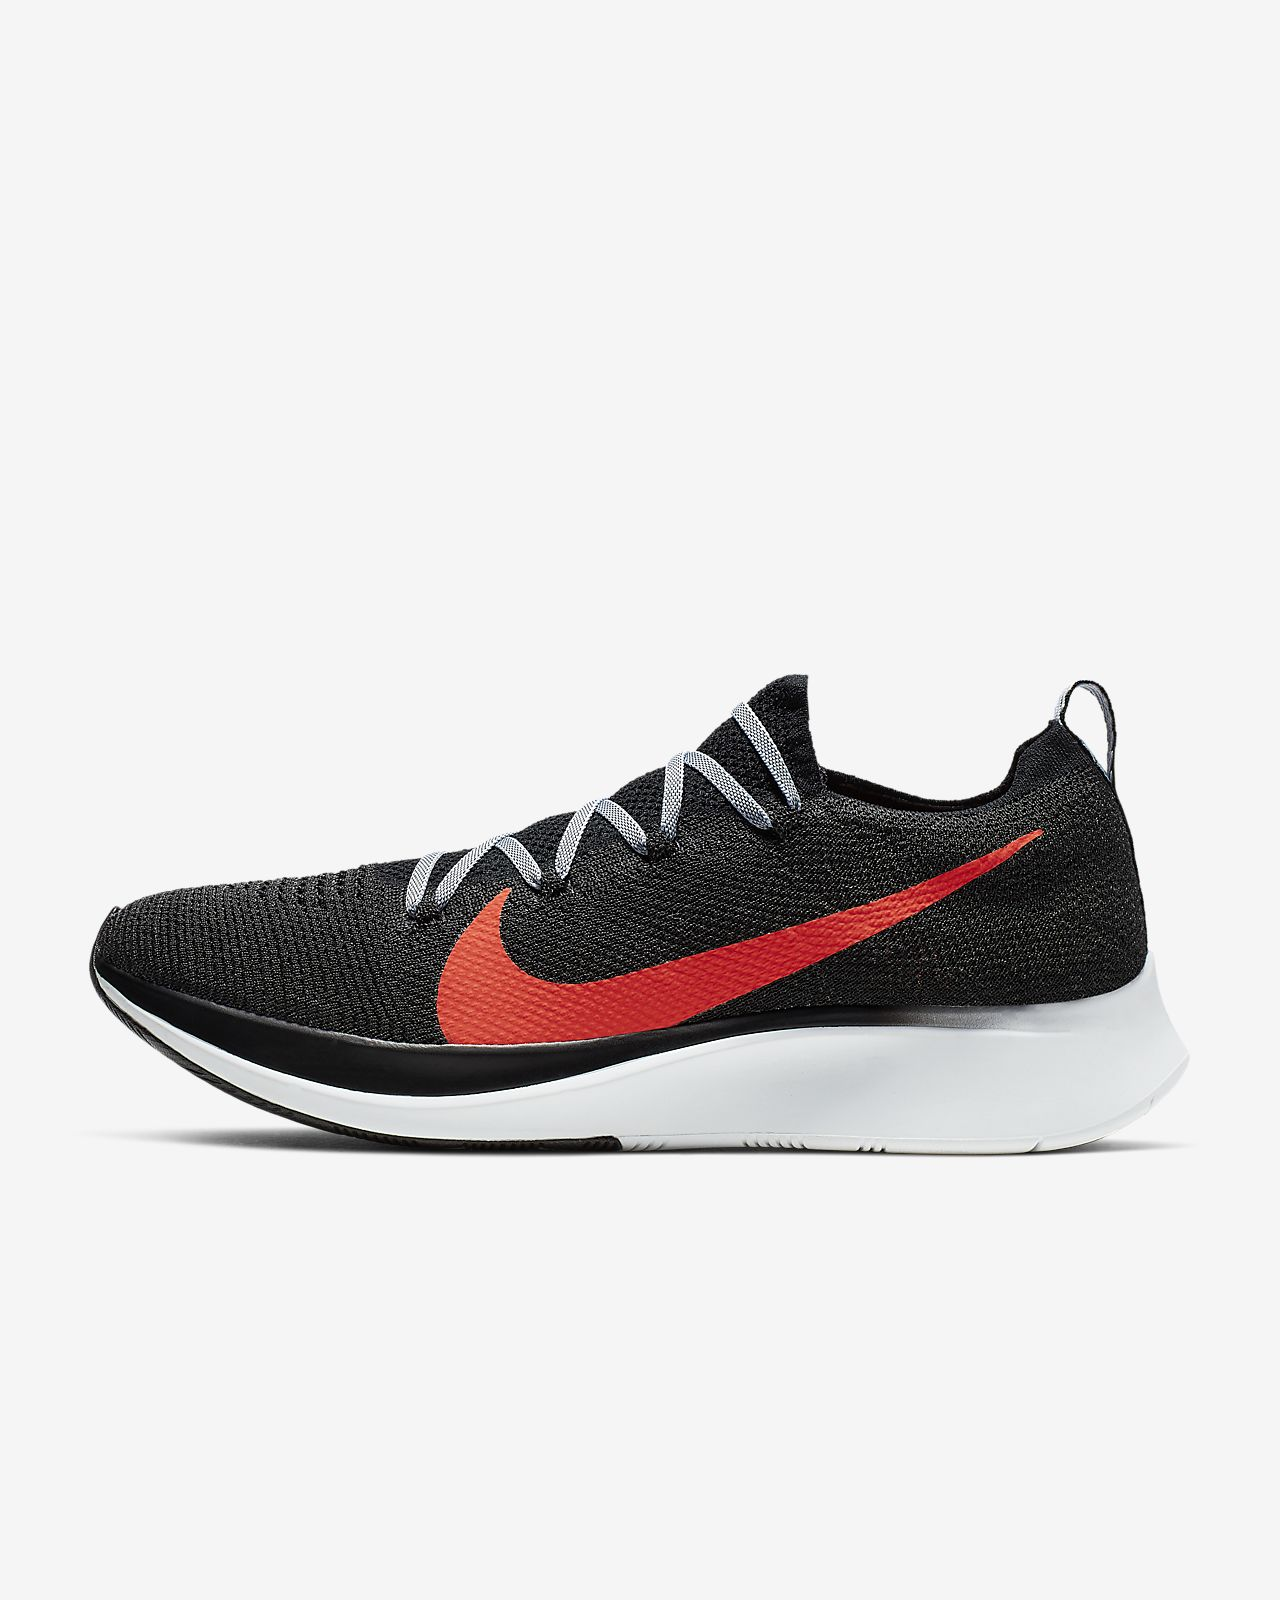 96cc1f1e4a116 Nike Zoom Fly Flyknit Men s Running Shoe. Nike.com